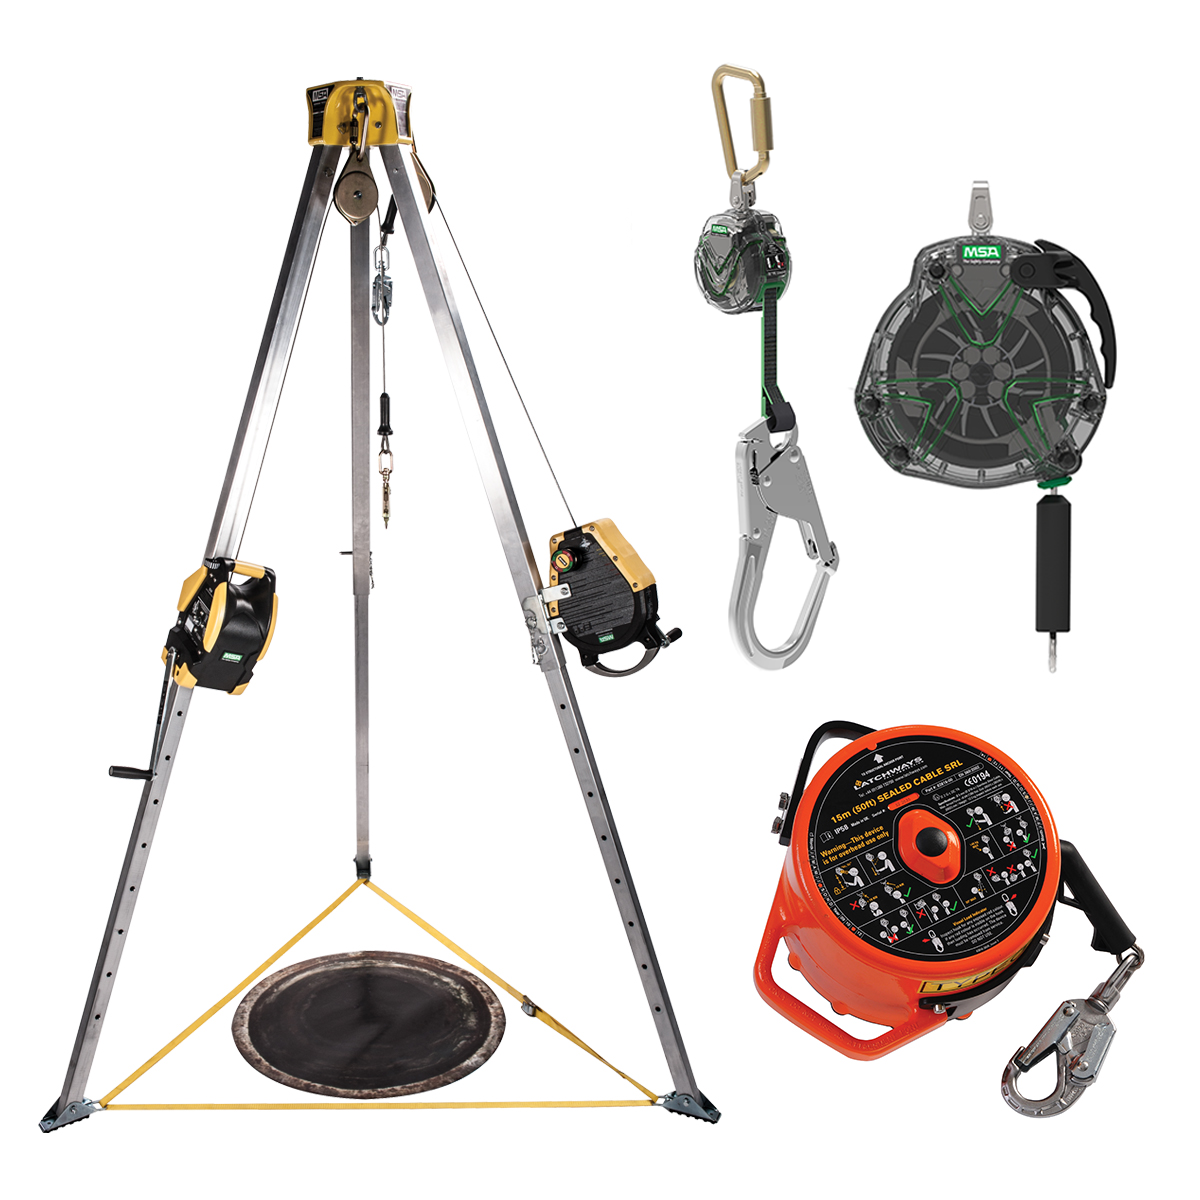 Group of MSA fall protection products